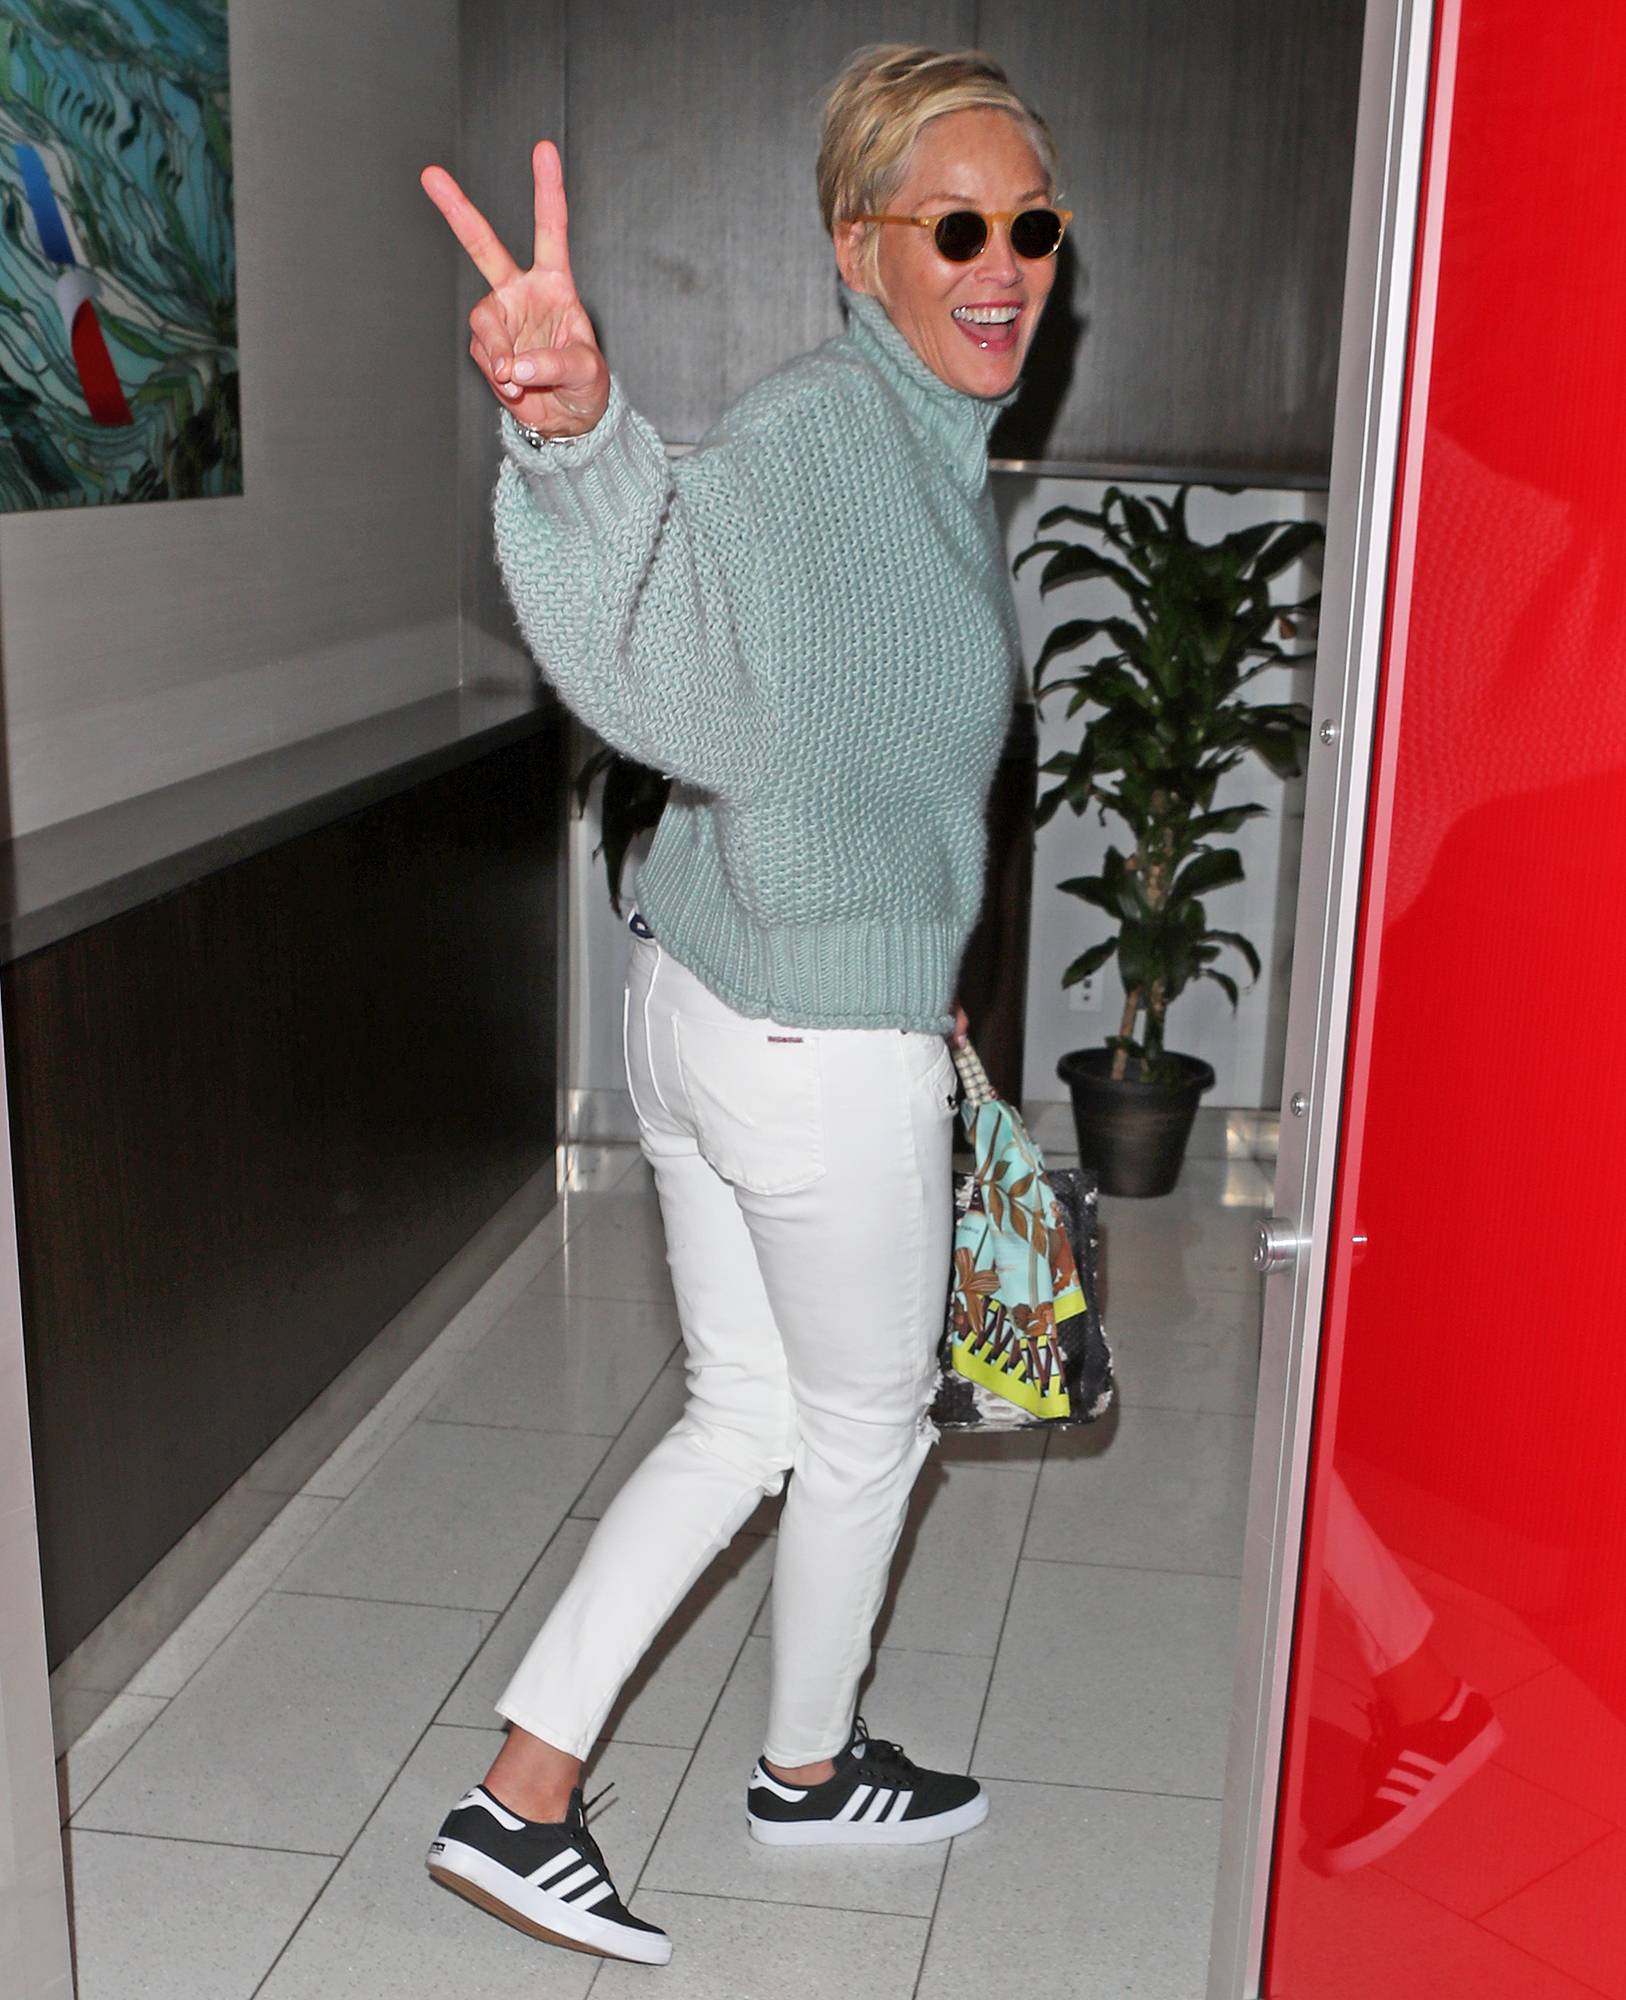 Sharon Stone happily signs her risquÈ Basic Instinct poster for fans at LAX airport